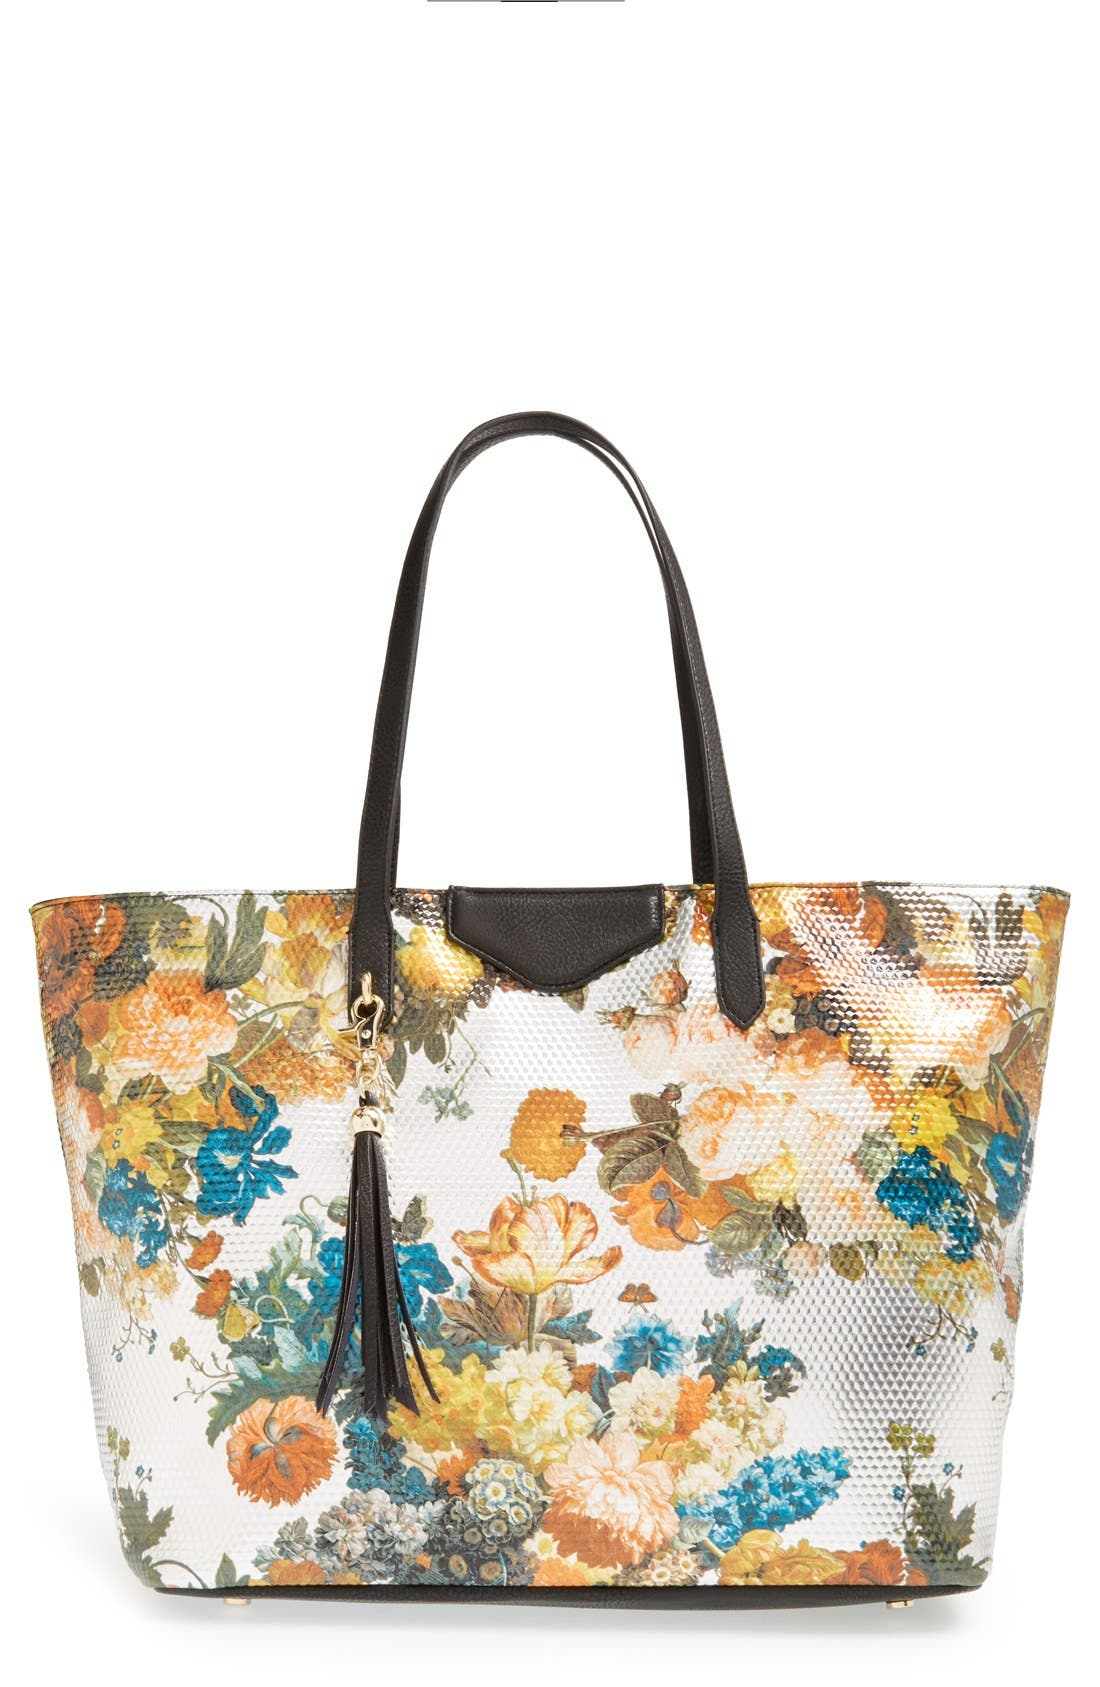 Alternate Image 1 Selected - POVERTY FLATS by rian Floral Print Tote